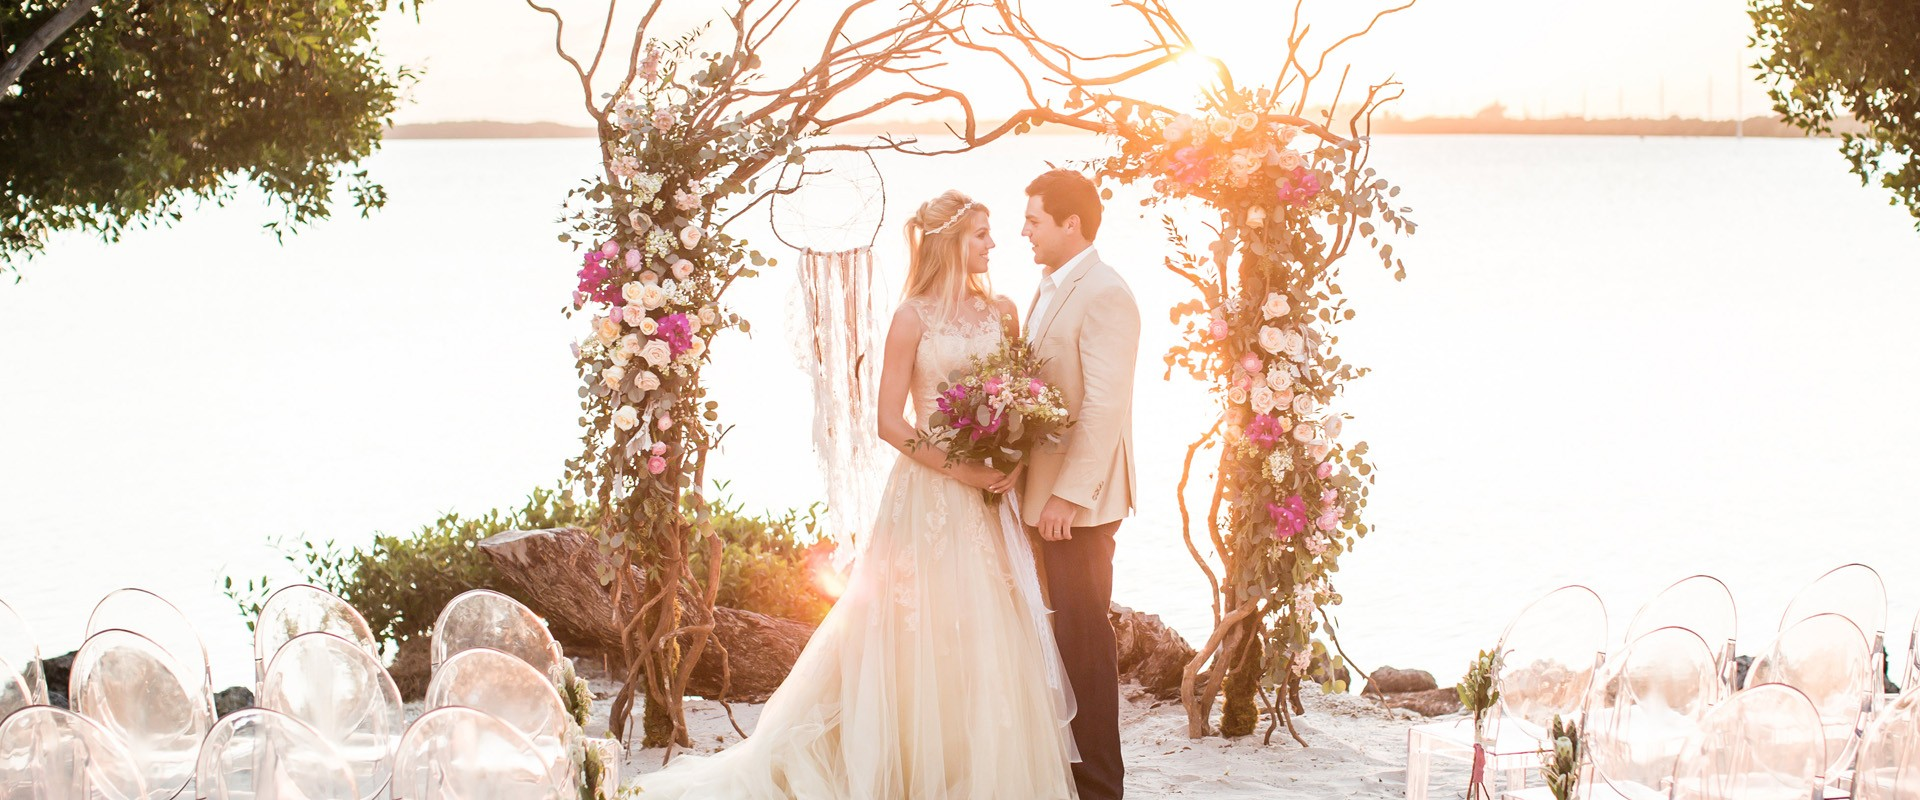 36 COVID-19 Weddings From Around the World